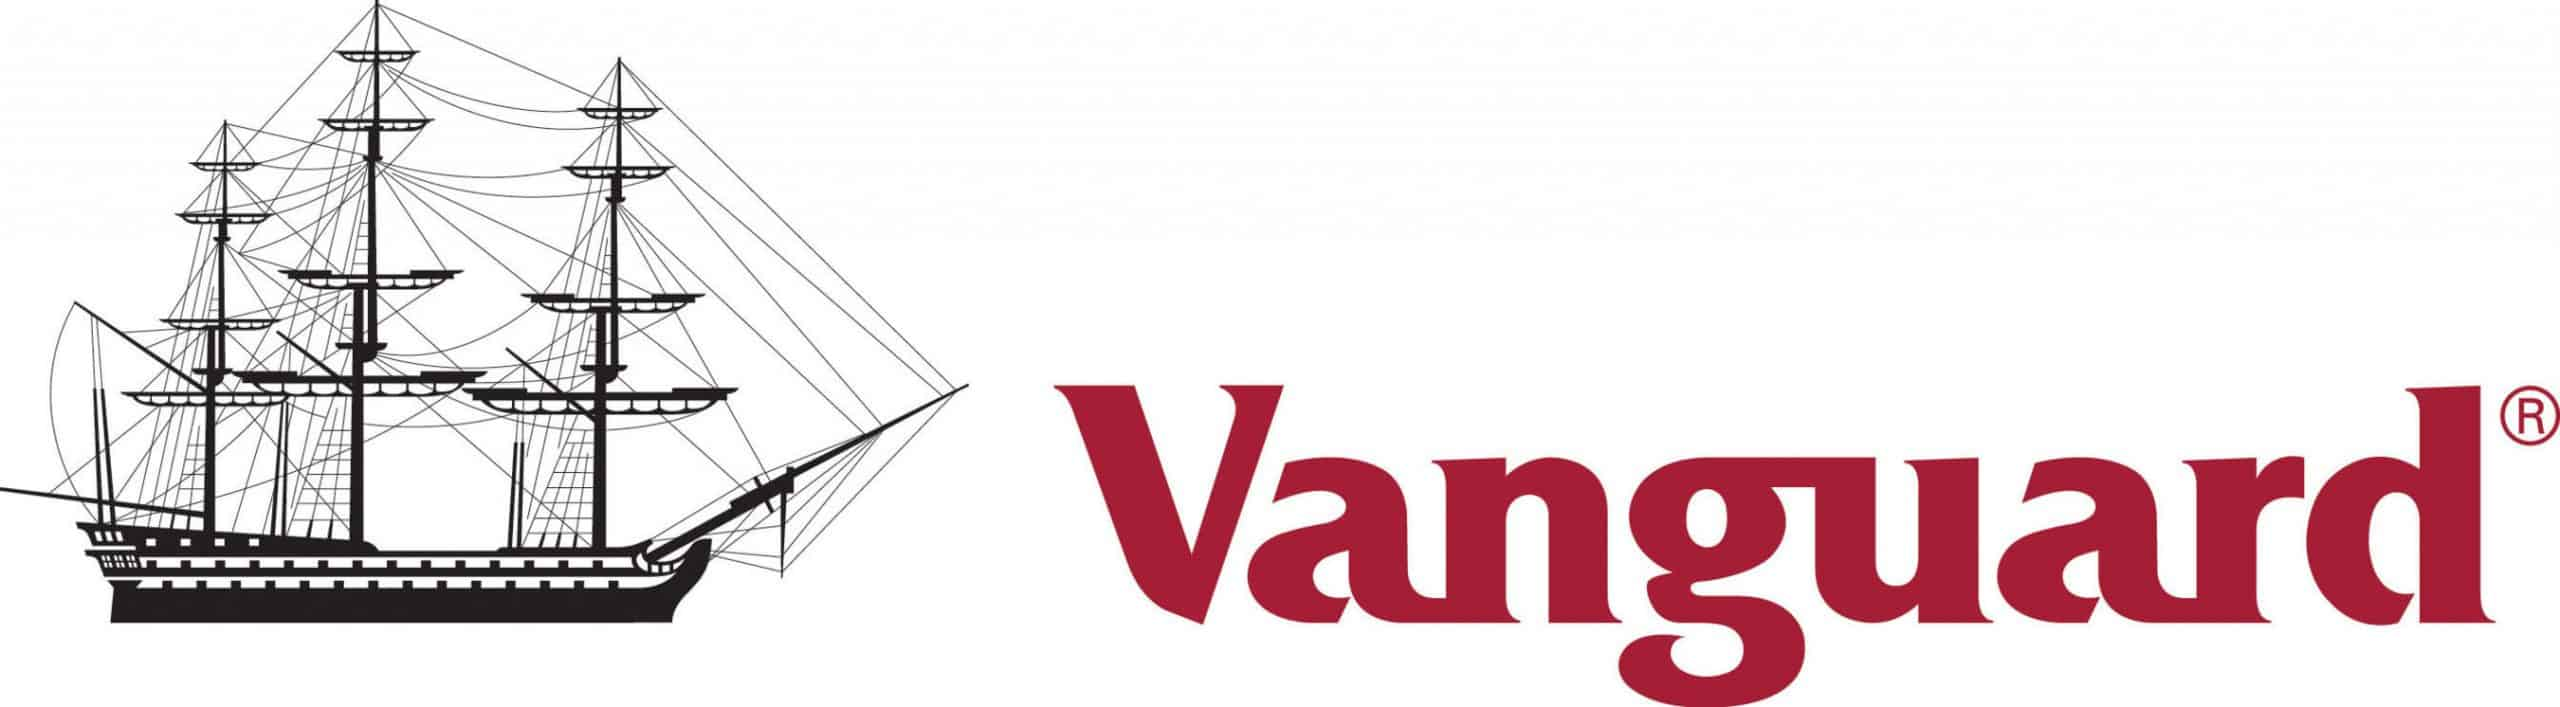 Vanguard was the pioneer of low fee investing for the people.